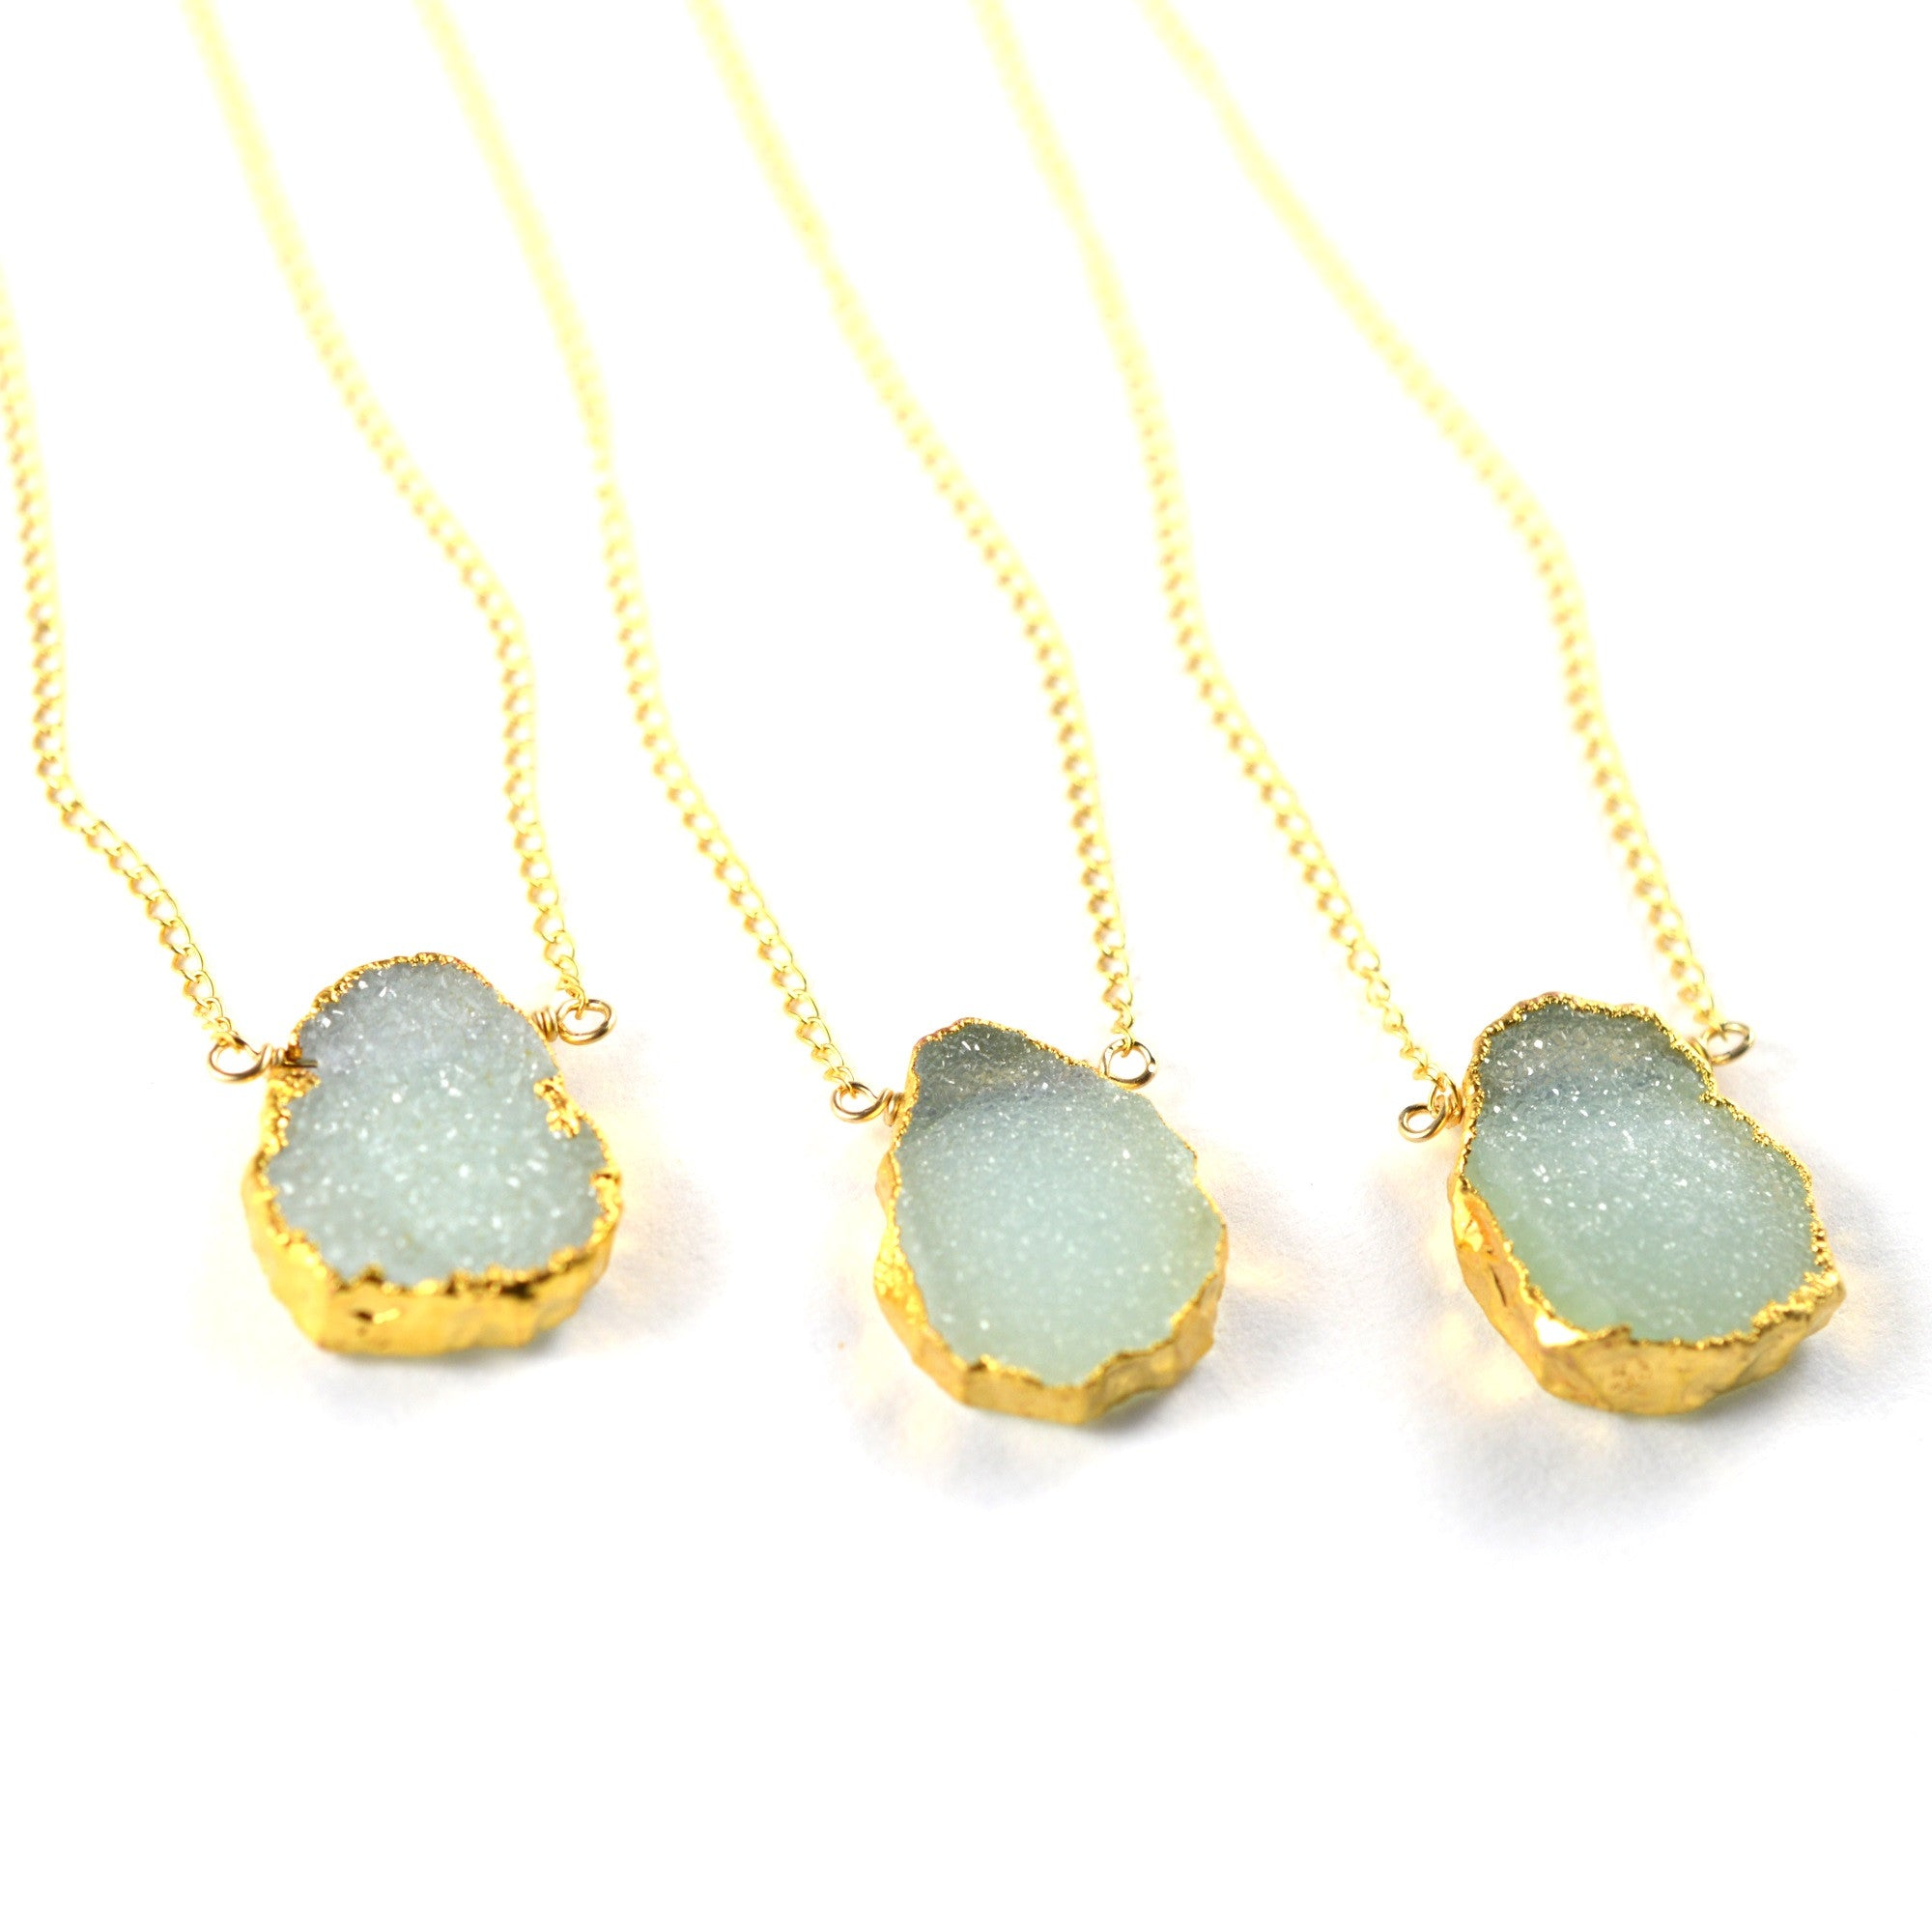 necklaces gold j gemstone precious necklace id enhancers at butterfly jewelry z garrard